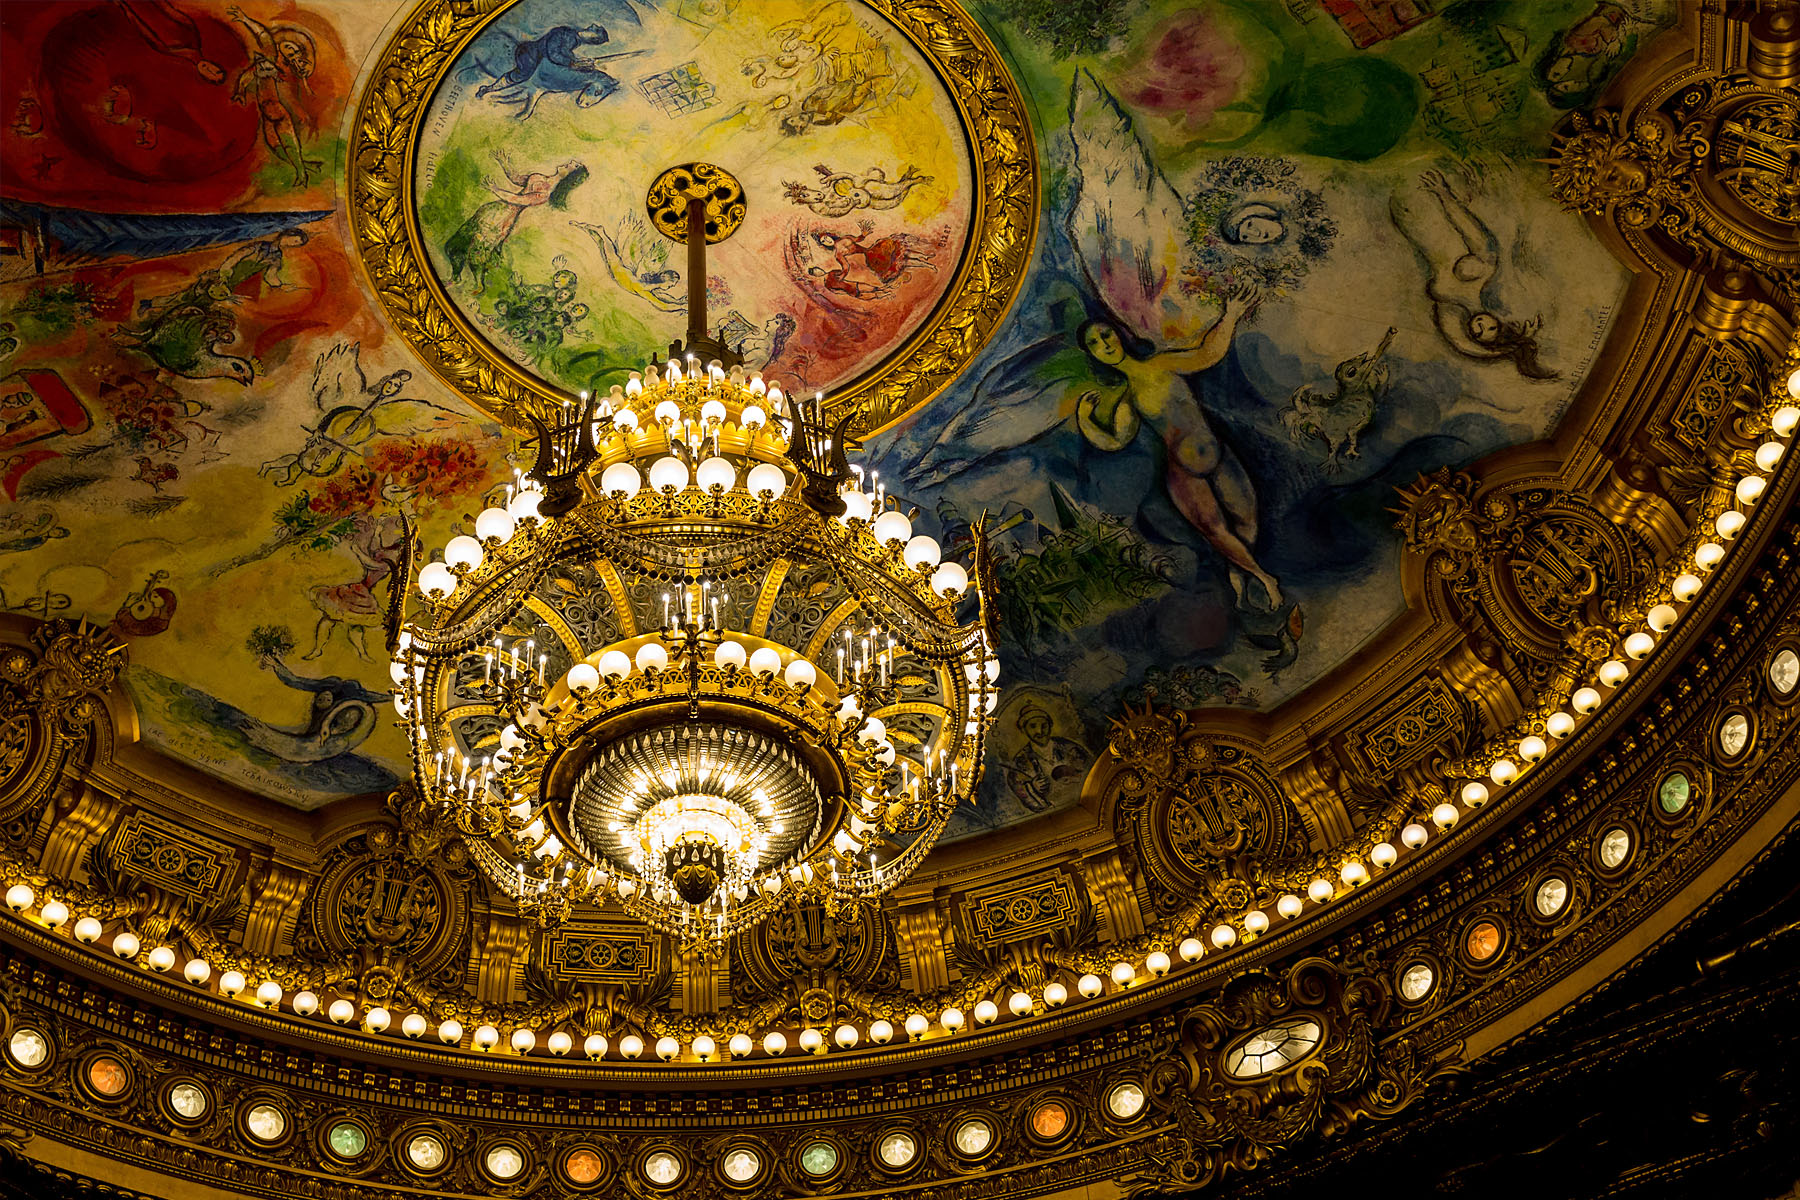 The chandelier and ceiling painted by Marc Chagall.